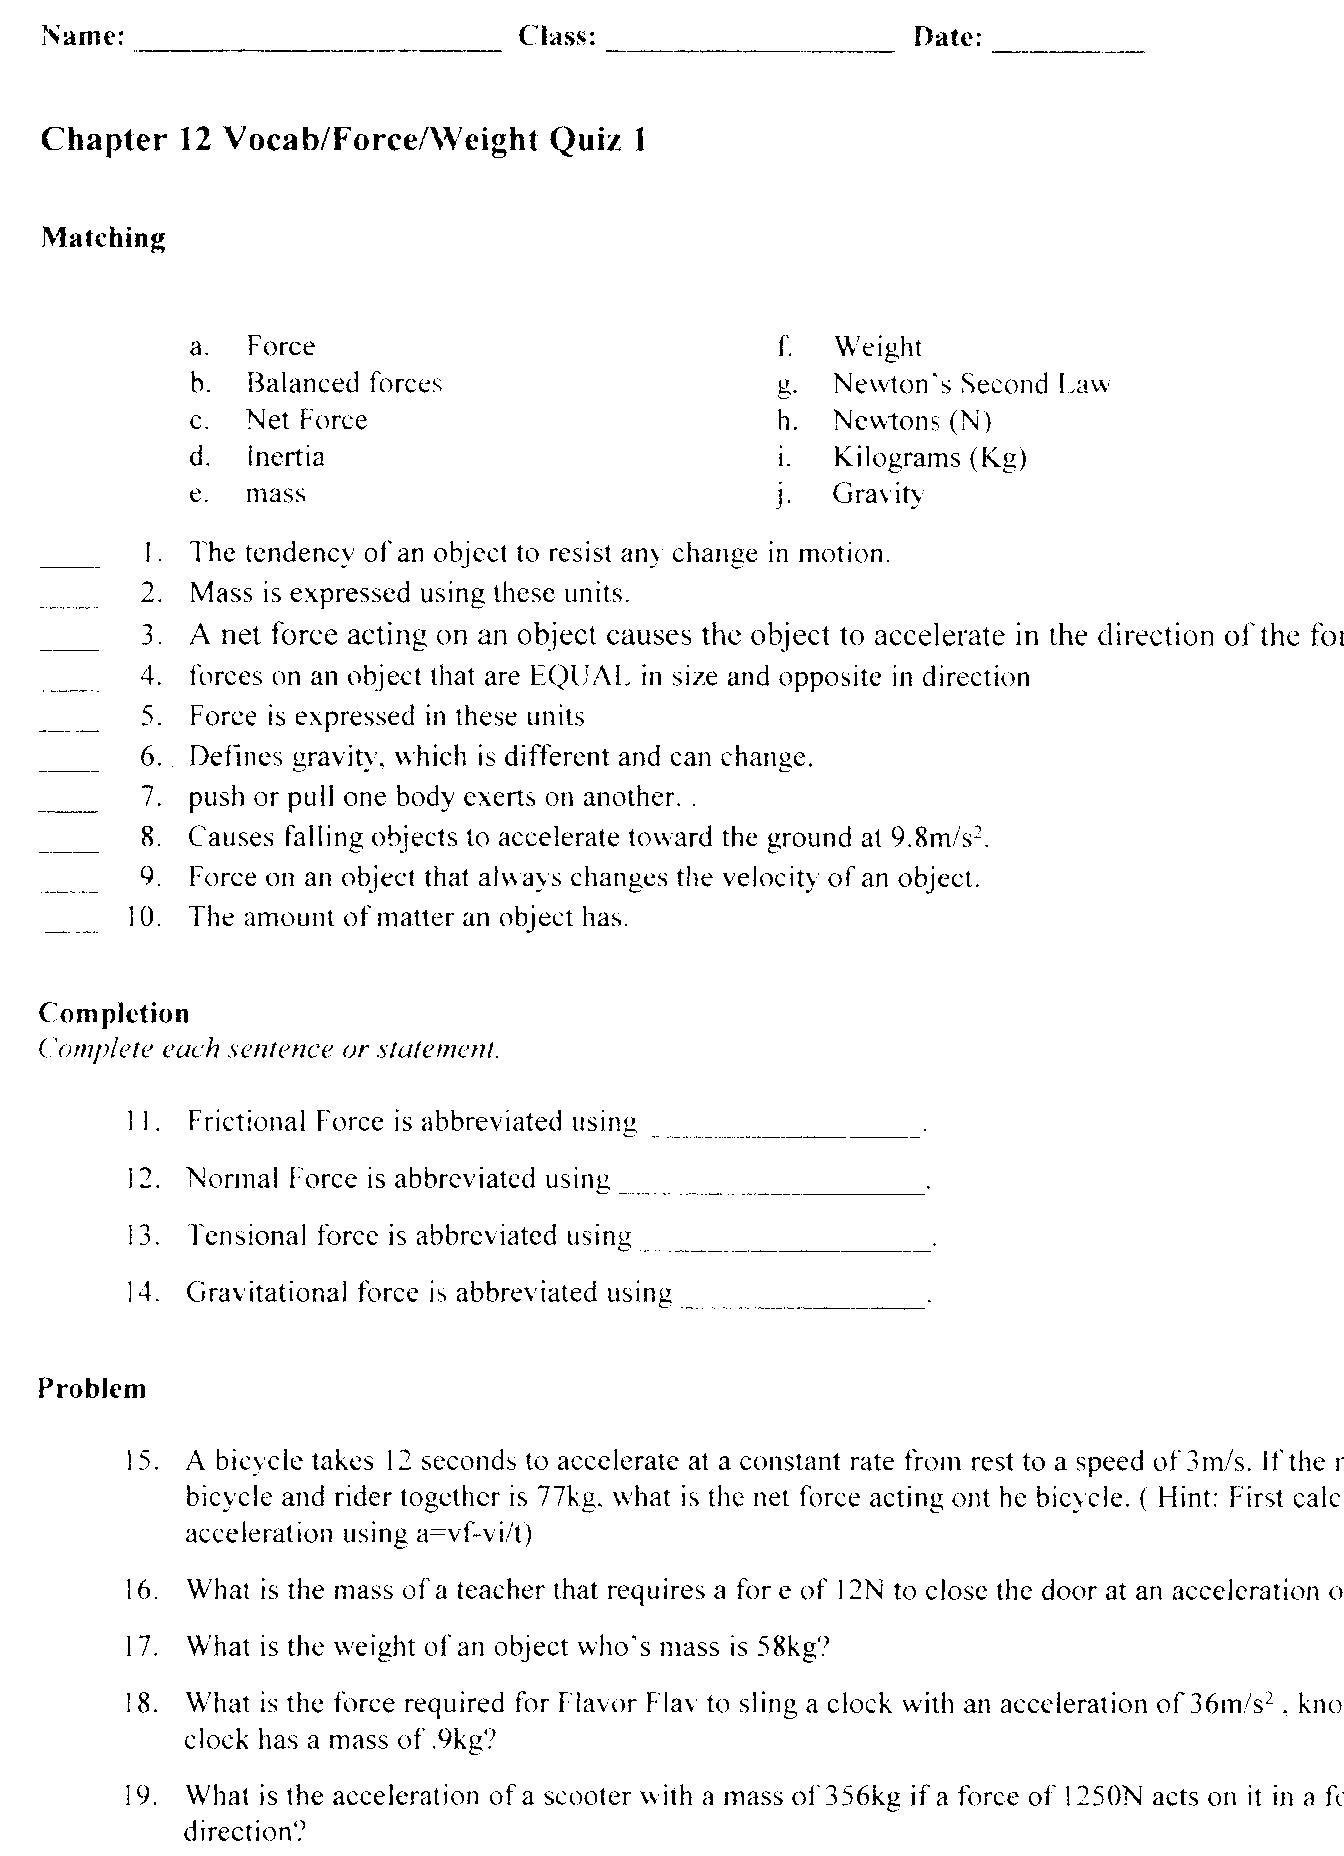 Worksheets Acceleration Problems Worksheet quia class page riverspscience force quiz side 2 momentum problems